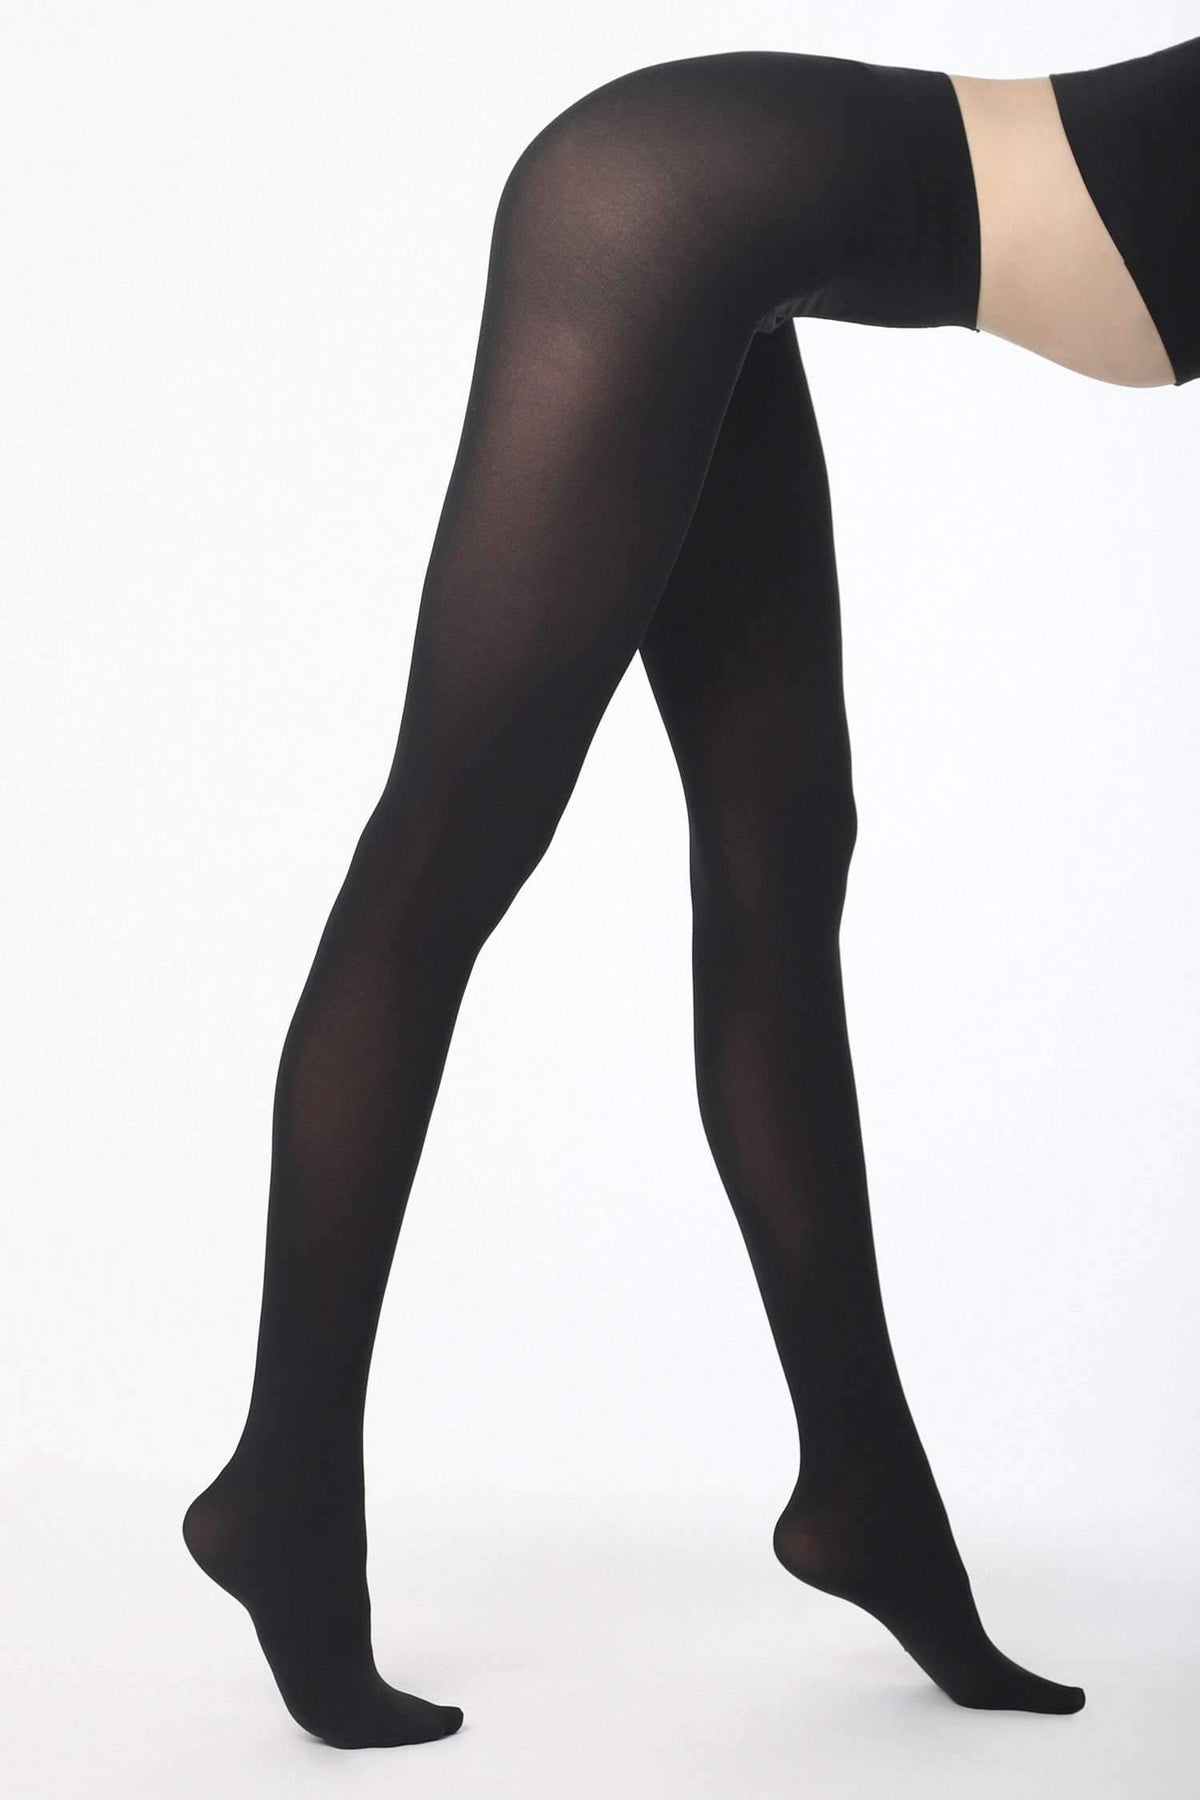 RN330 - Opaque Tights hosiery Los Angeles Apparel Black OS